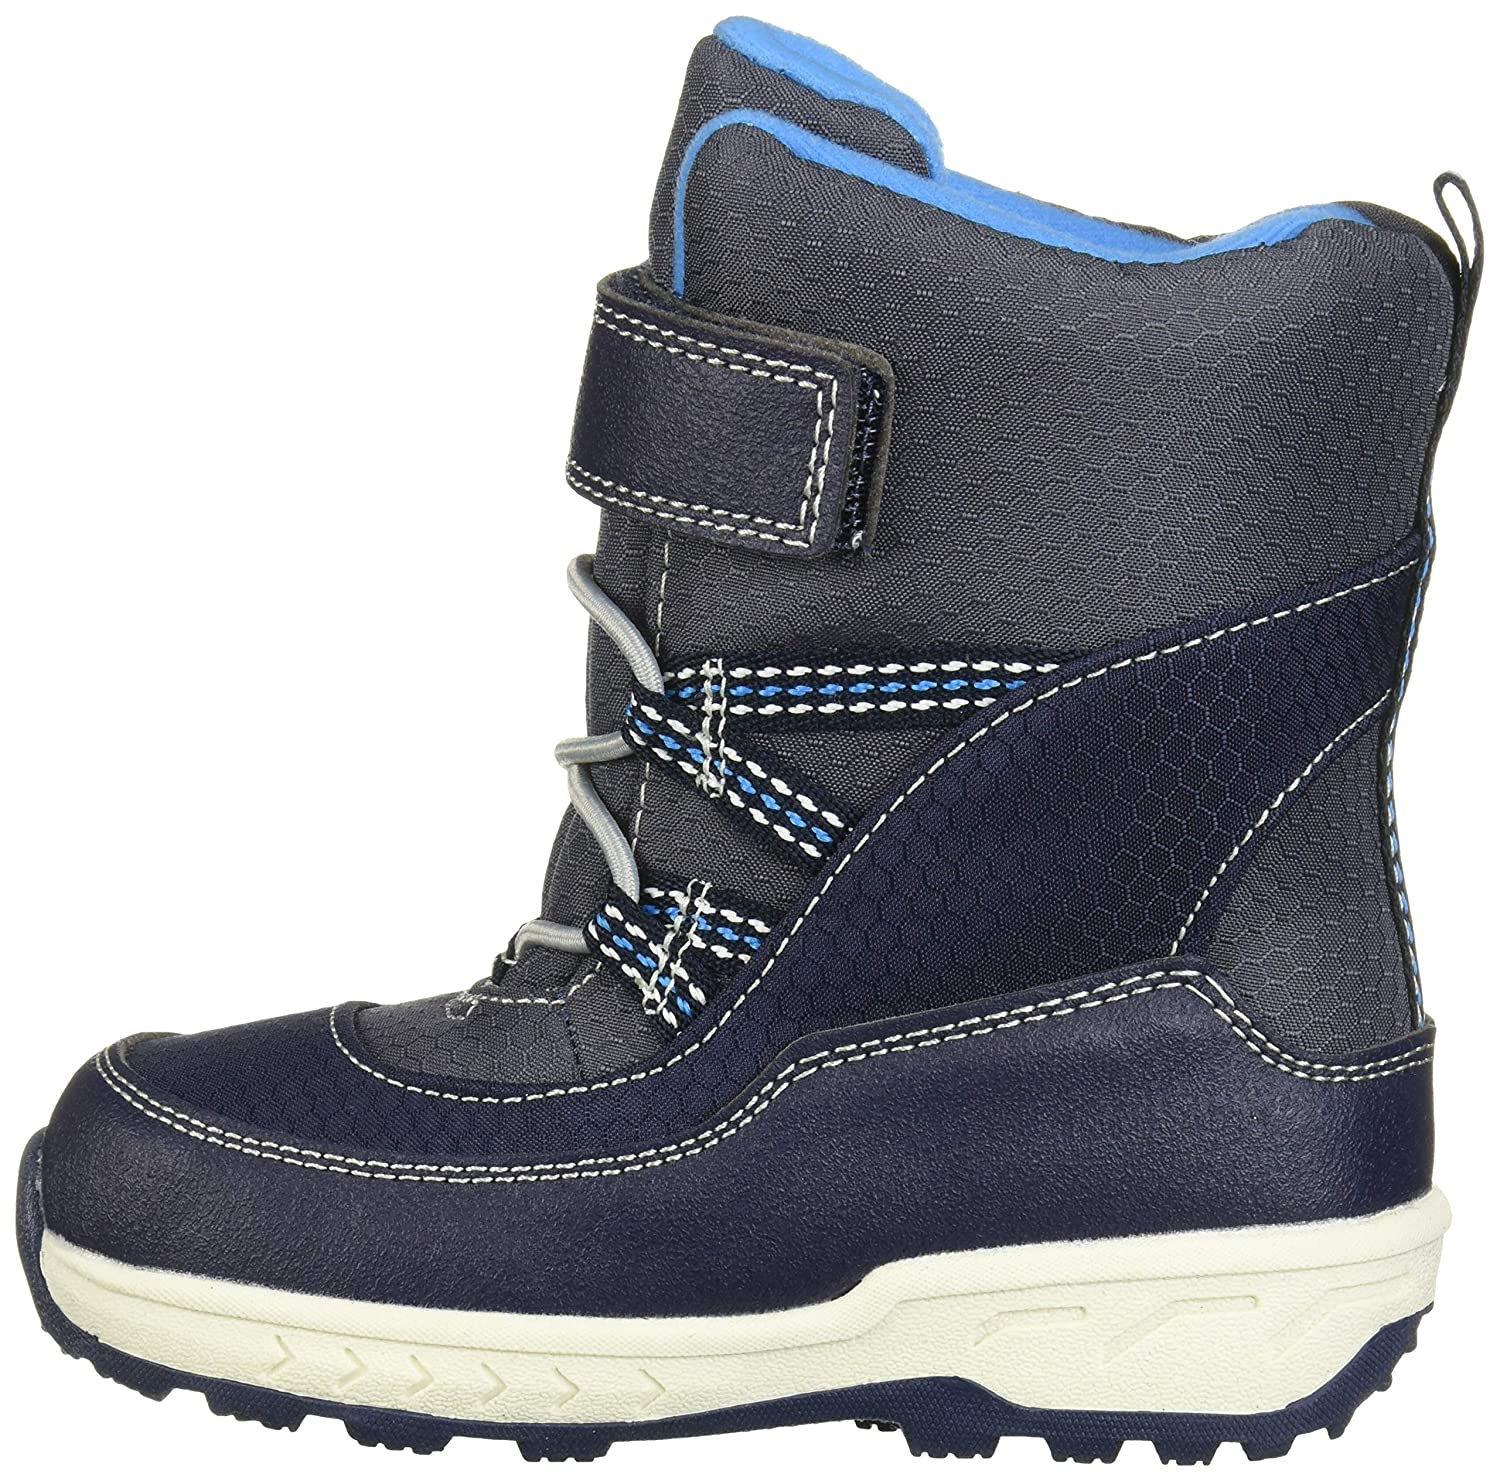 5 M US Toddler Navy Carters Boyss Uphill2-B Weather Boot